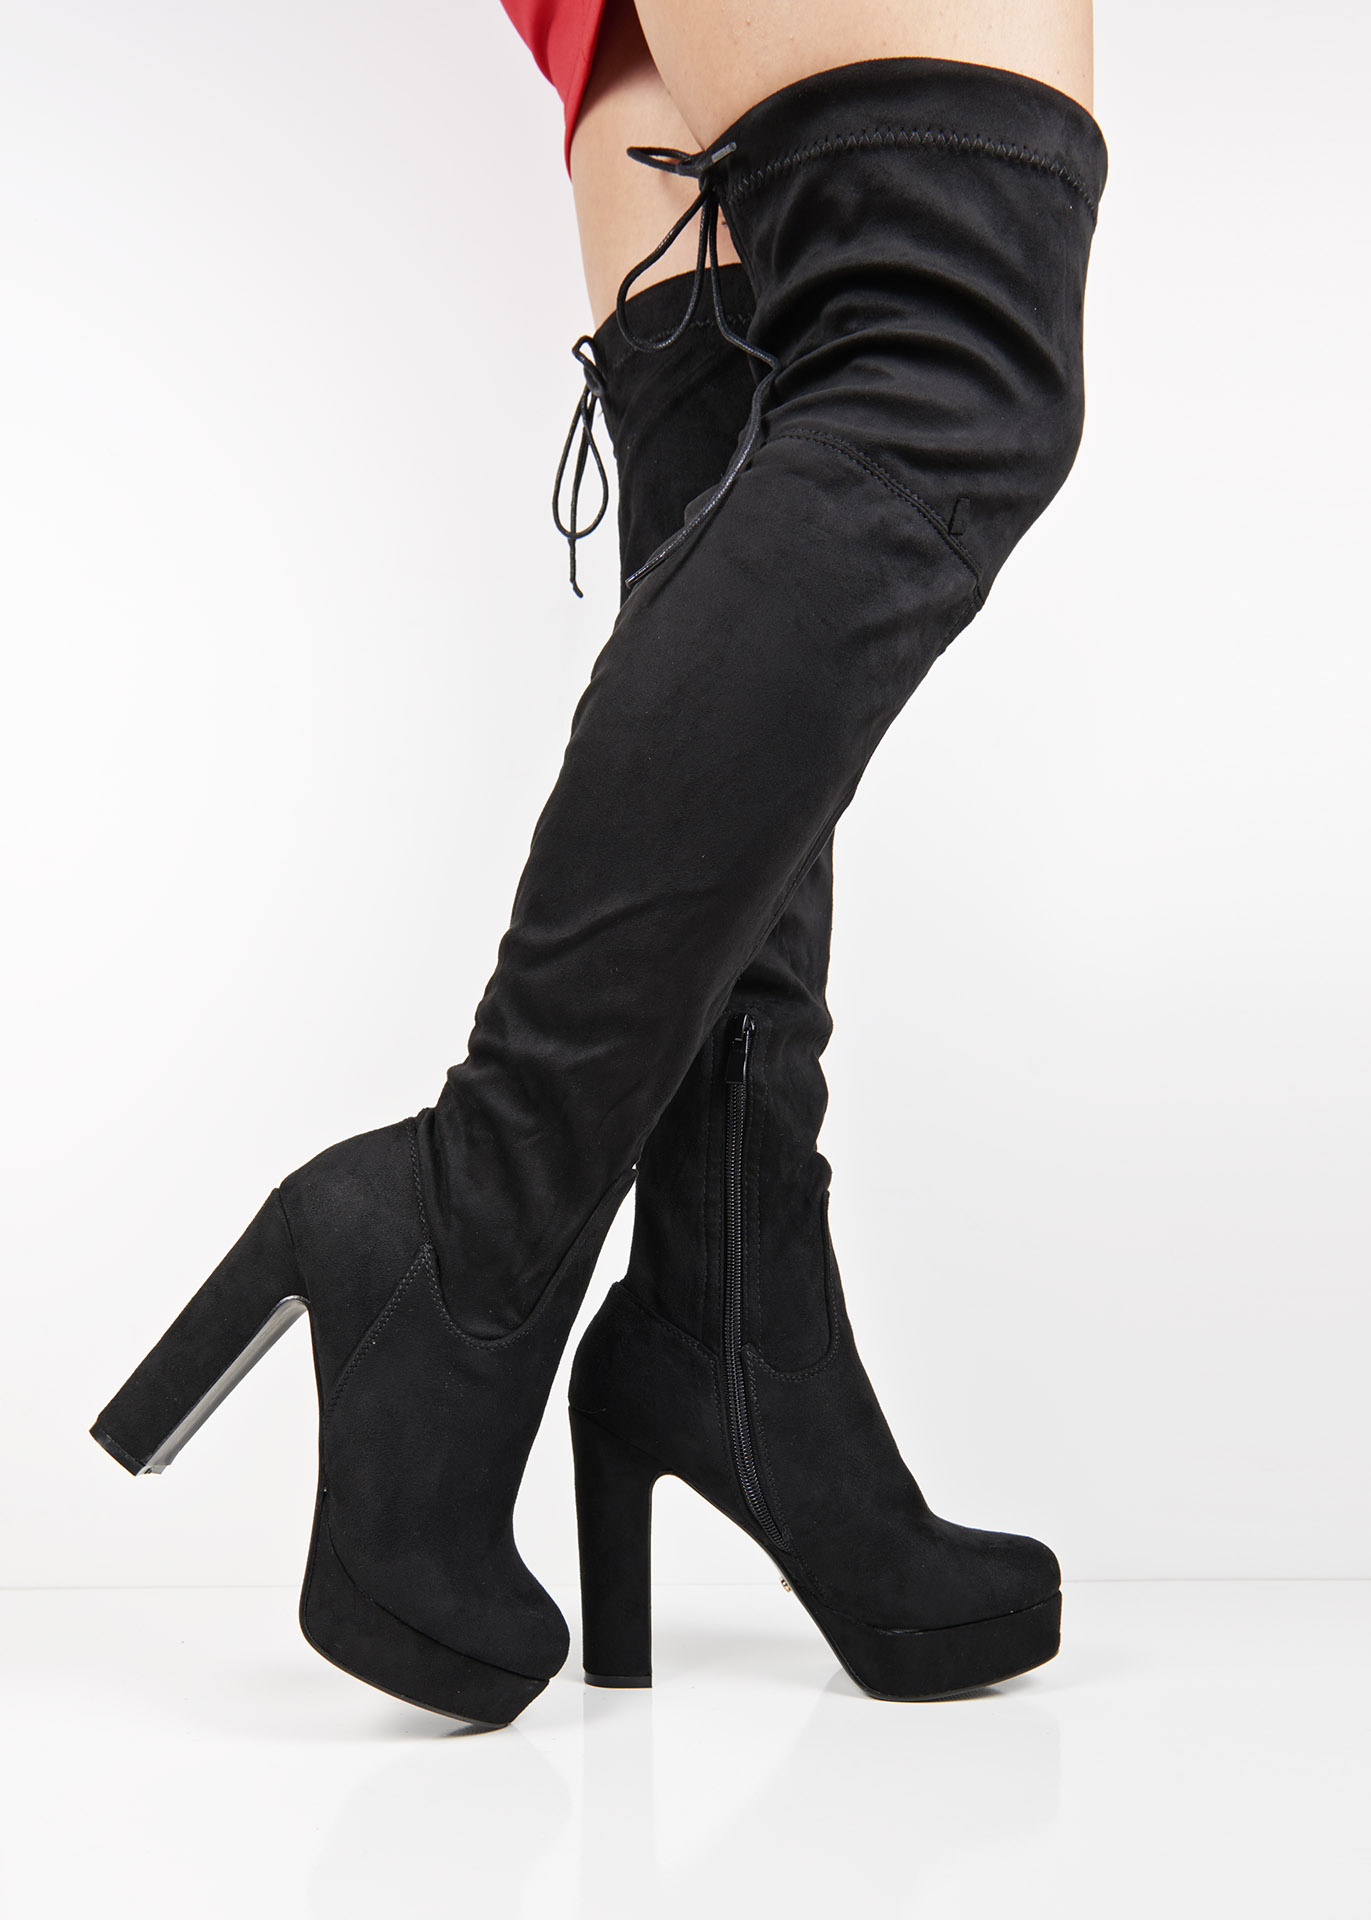 e0630ac024b ... Black suede platform block heel over the knee boots. 🔍 -30%. Previous   Next